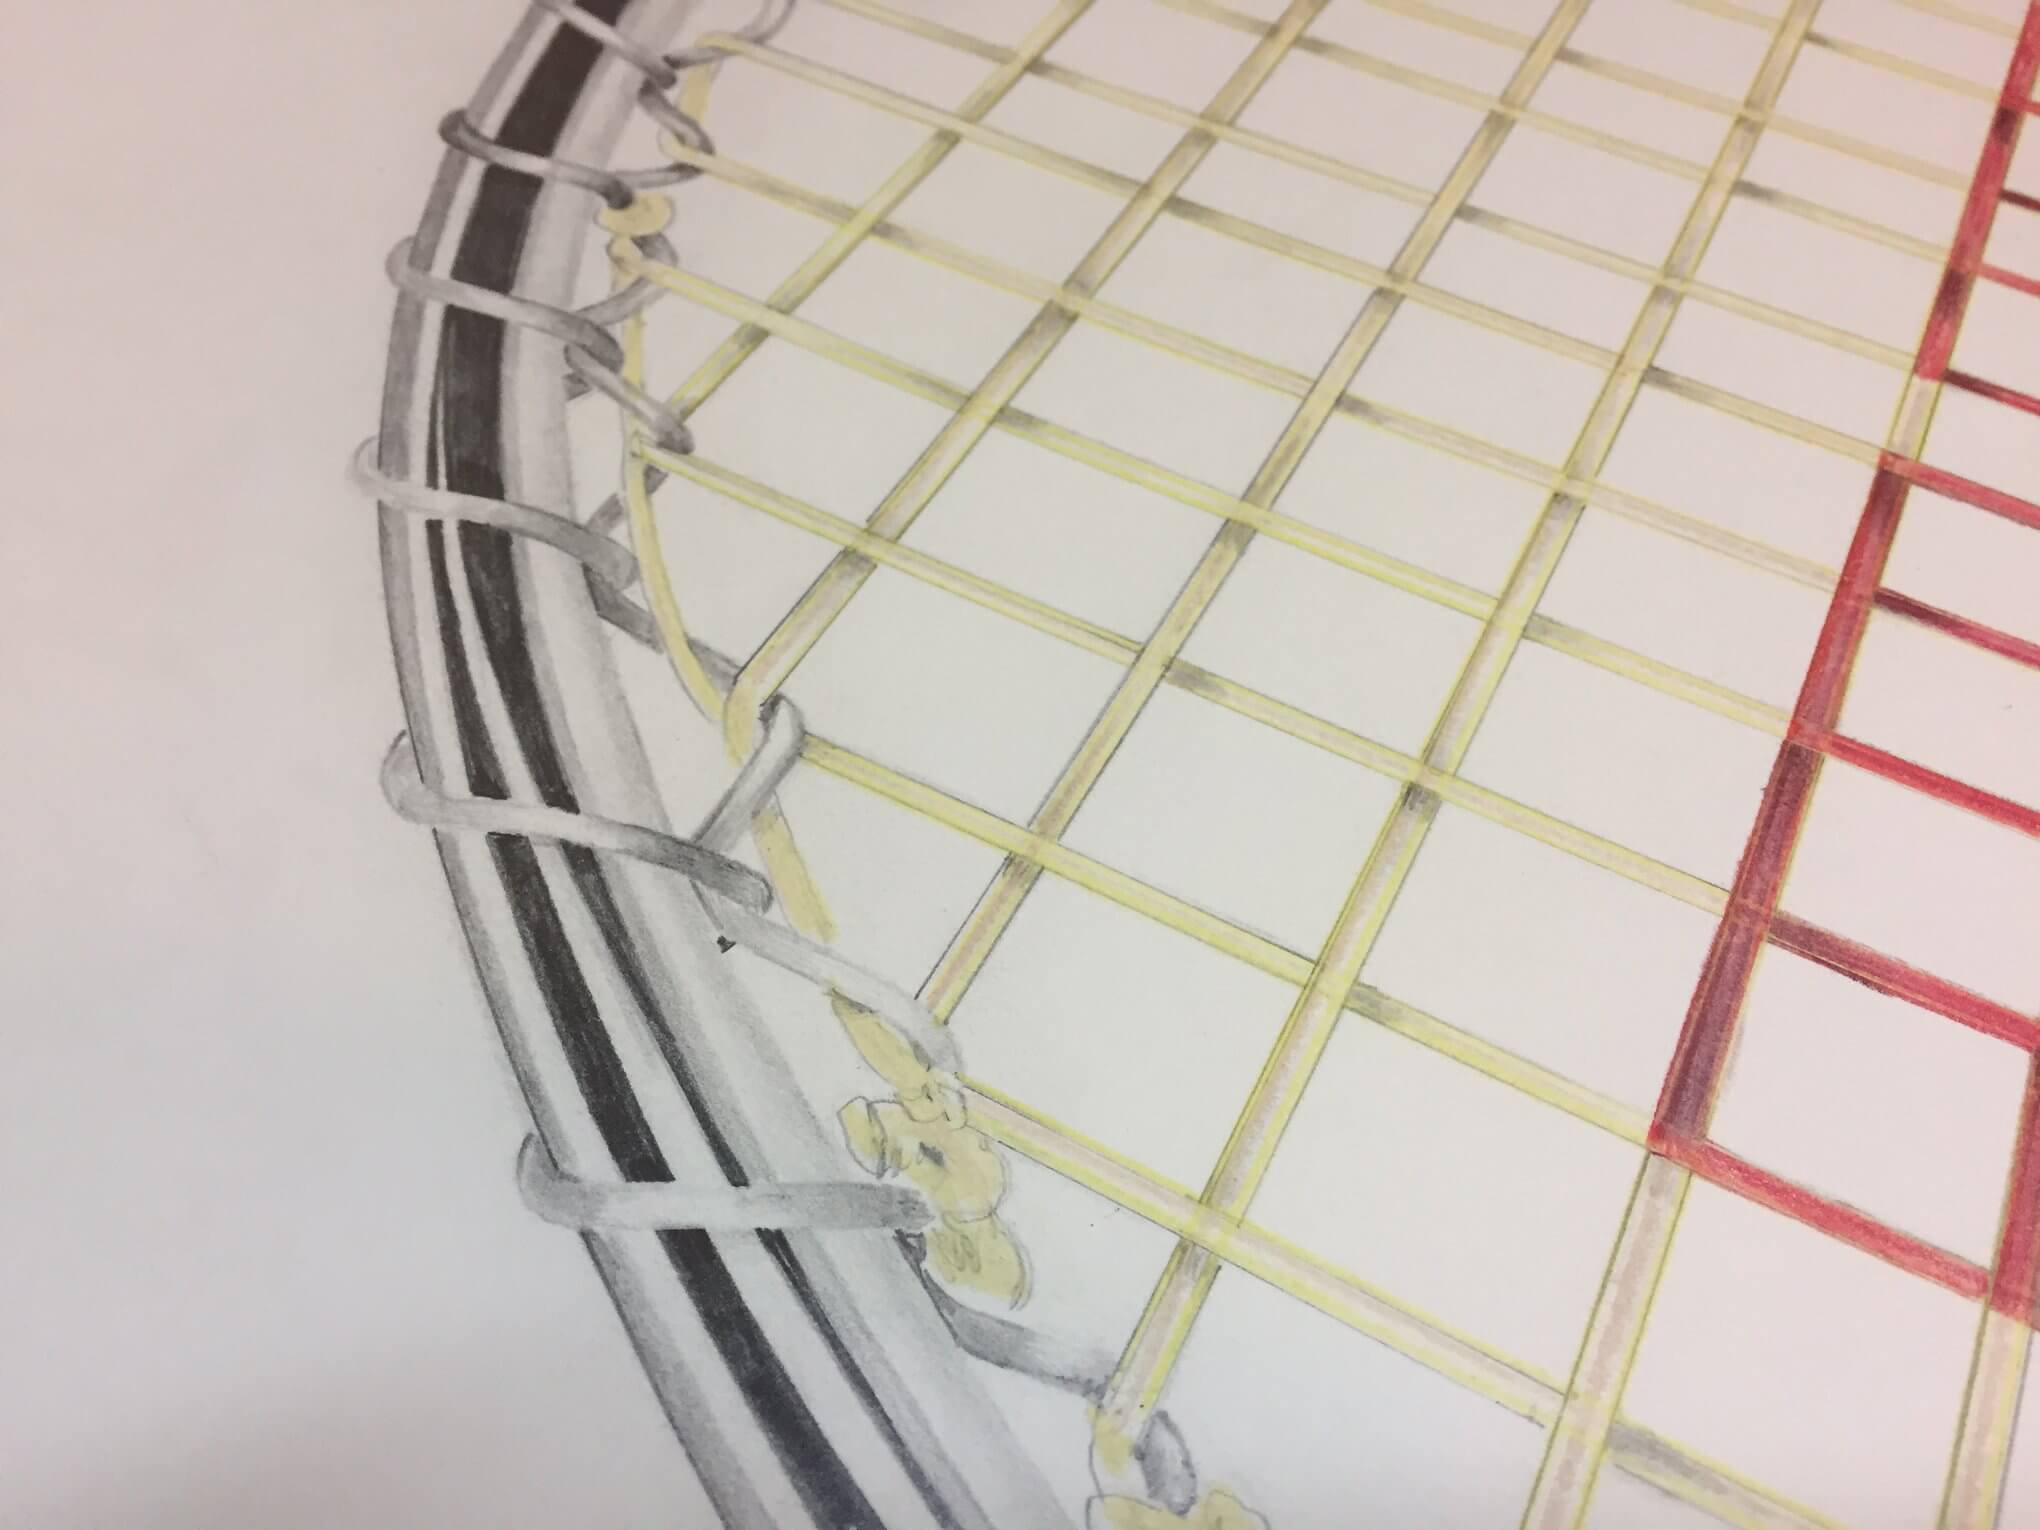 Wilson T2000 Tennis Racquet detail by Michael Pitzer